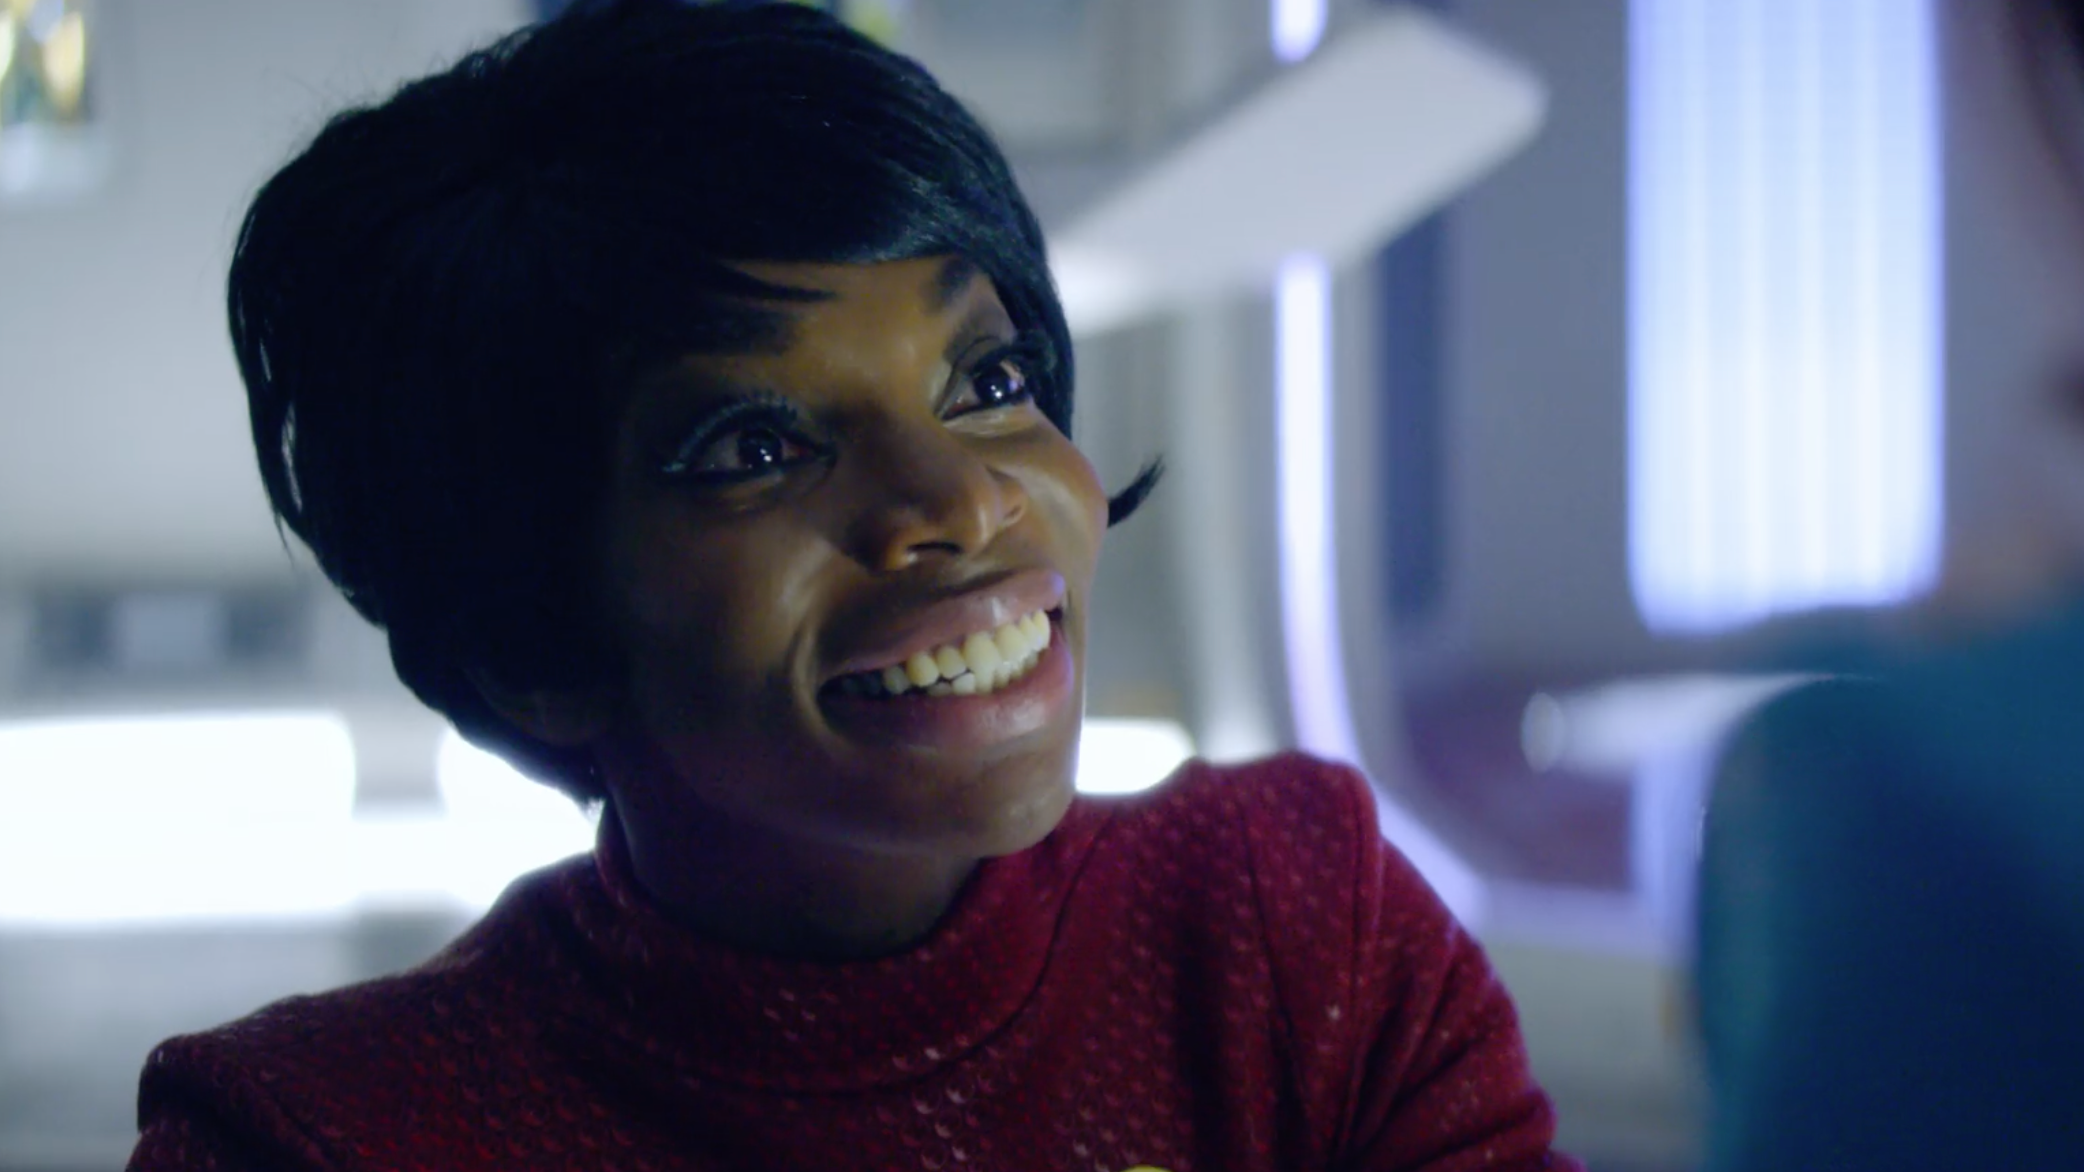 Stop What You're Doing And Watch Black Mirror's 'USS Callister'